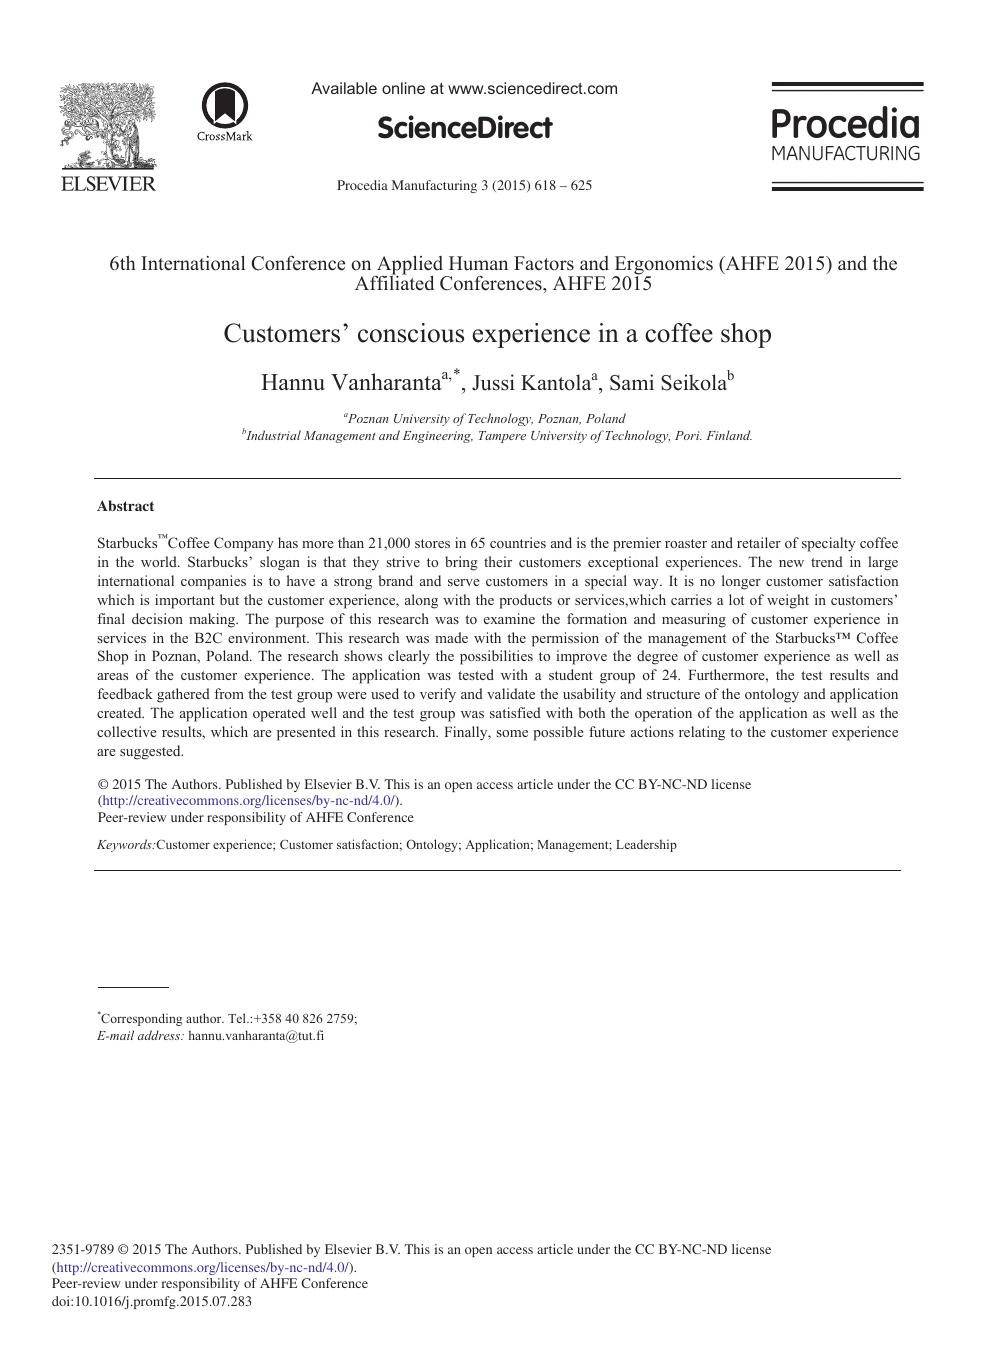 Customers' Conscious Experience in a Coffee Shop – topic of